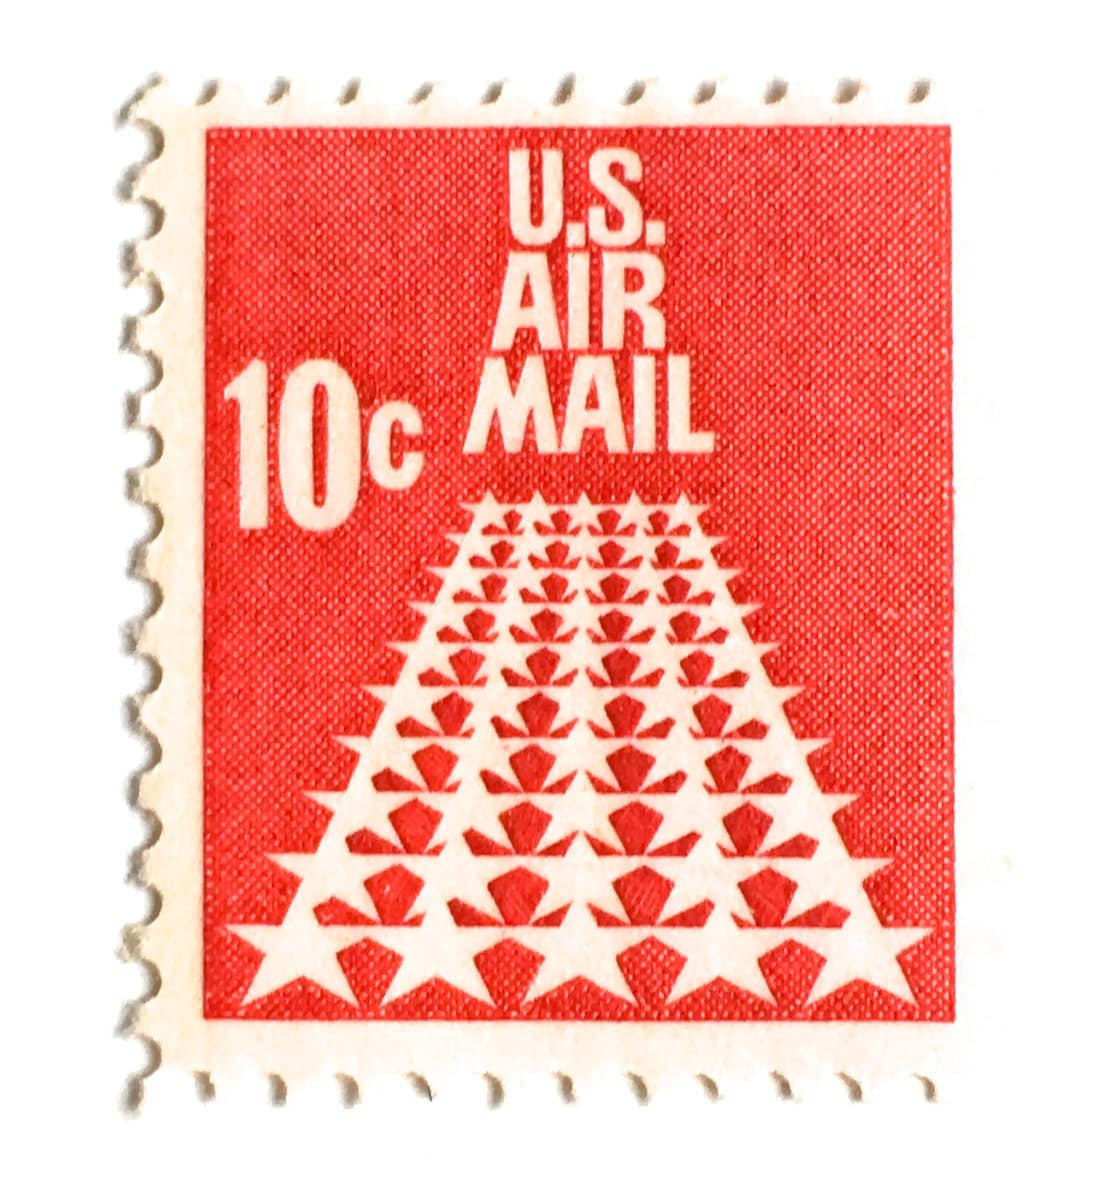 10 Unused Vintage 1968 Air Mail Postage Stamps // 10 Cent Red | Etsy